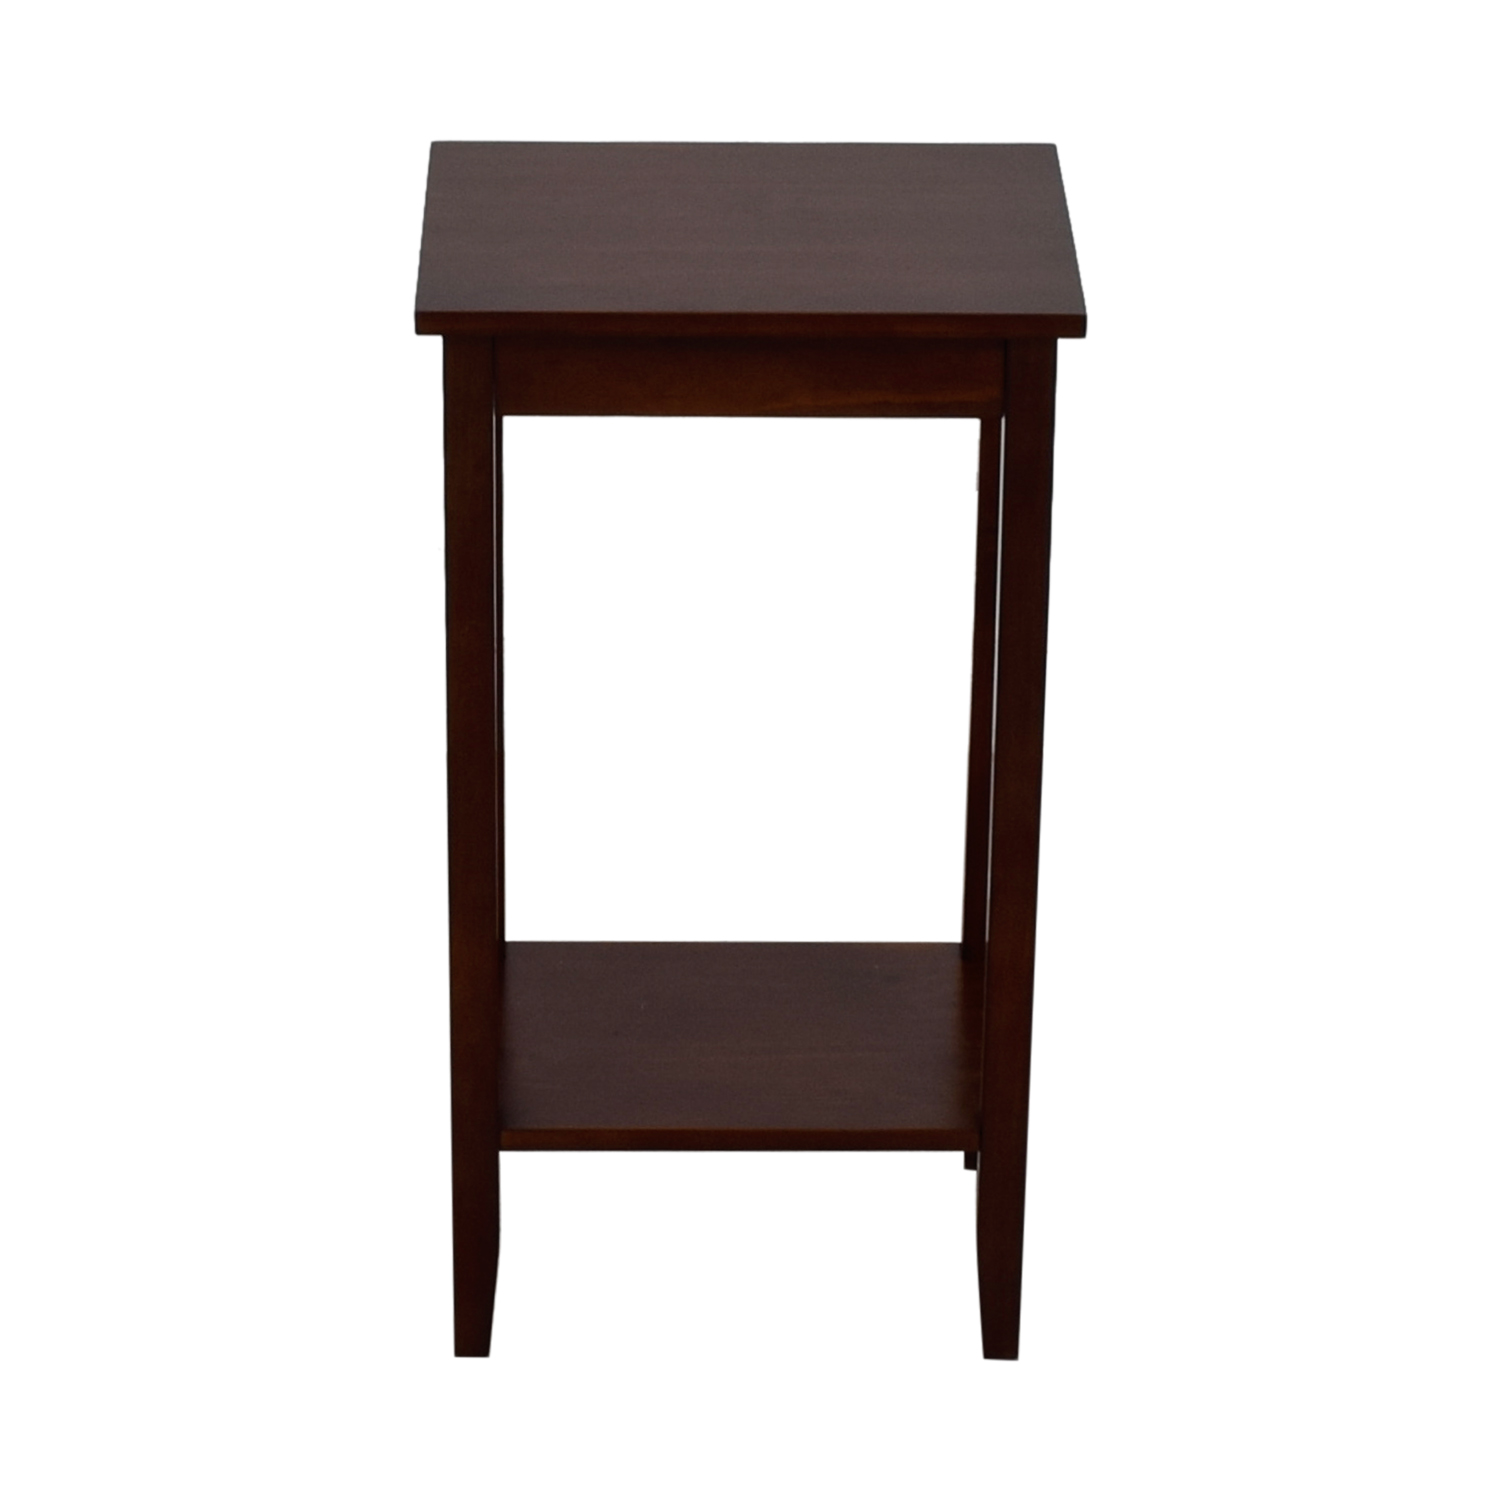 off dorel home products rosewood tall end table used accent tables bistro and chairs acrylic with shelf outdoor grill work counter height sofa sitting room turquoise bedside lamps